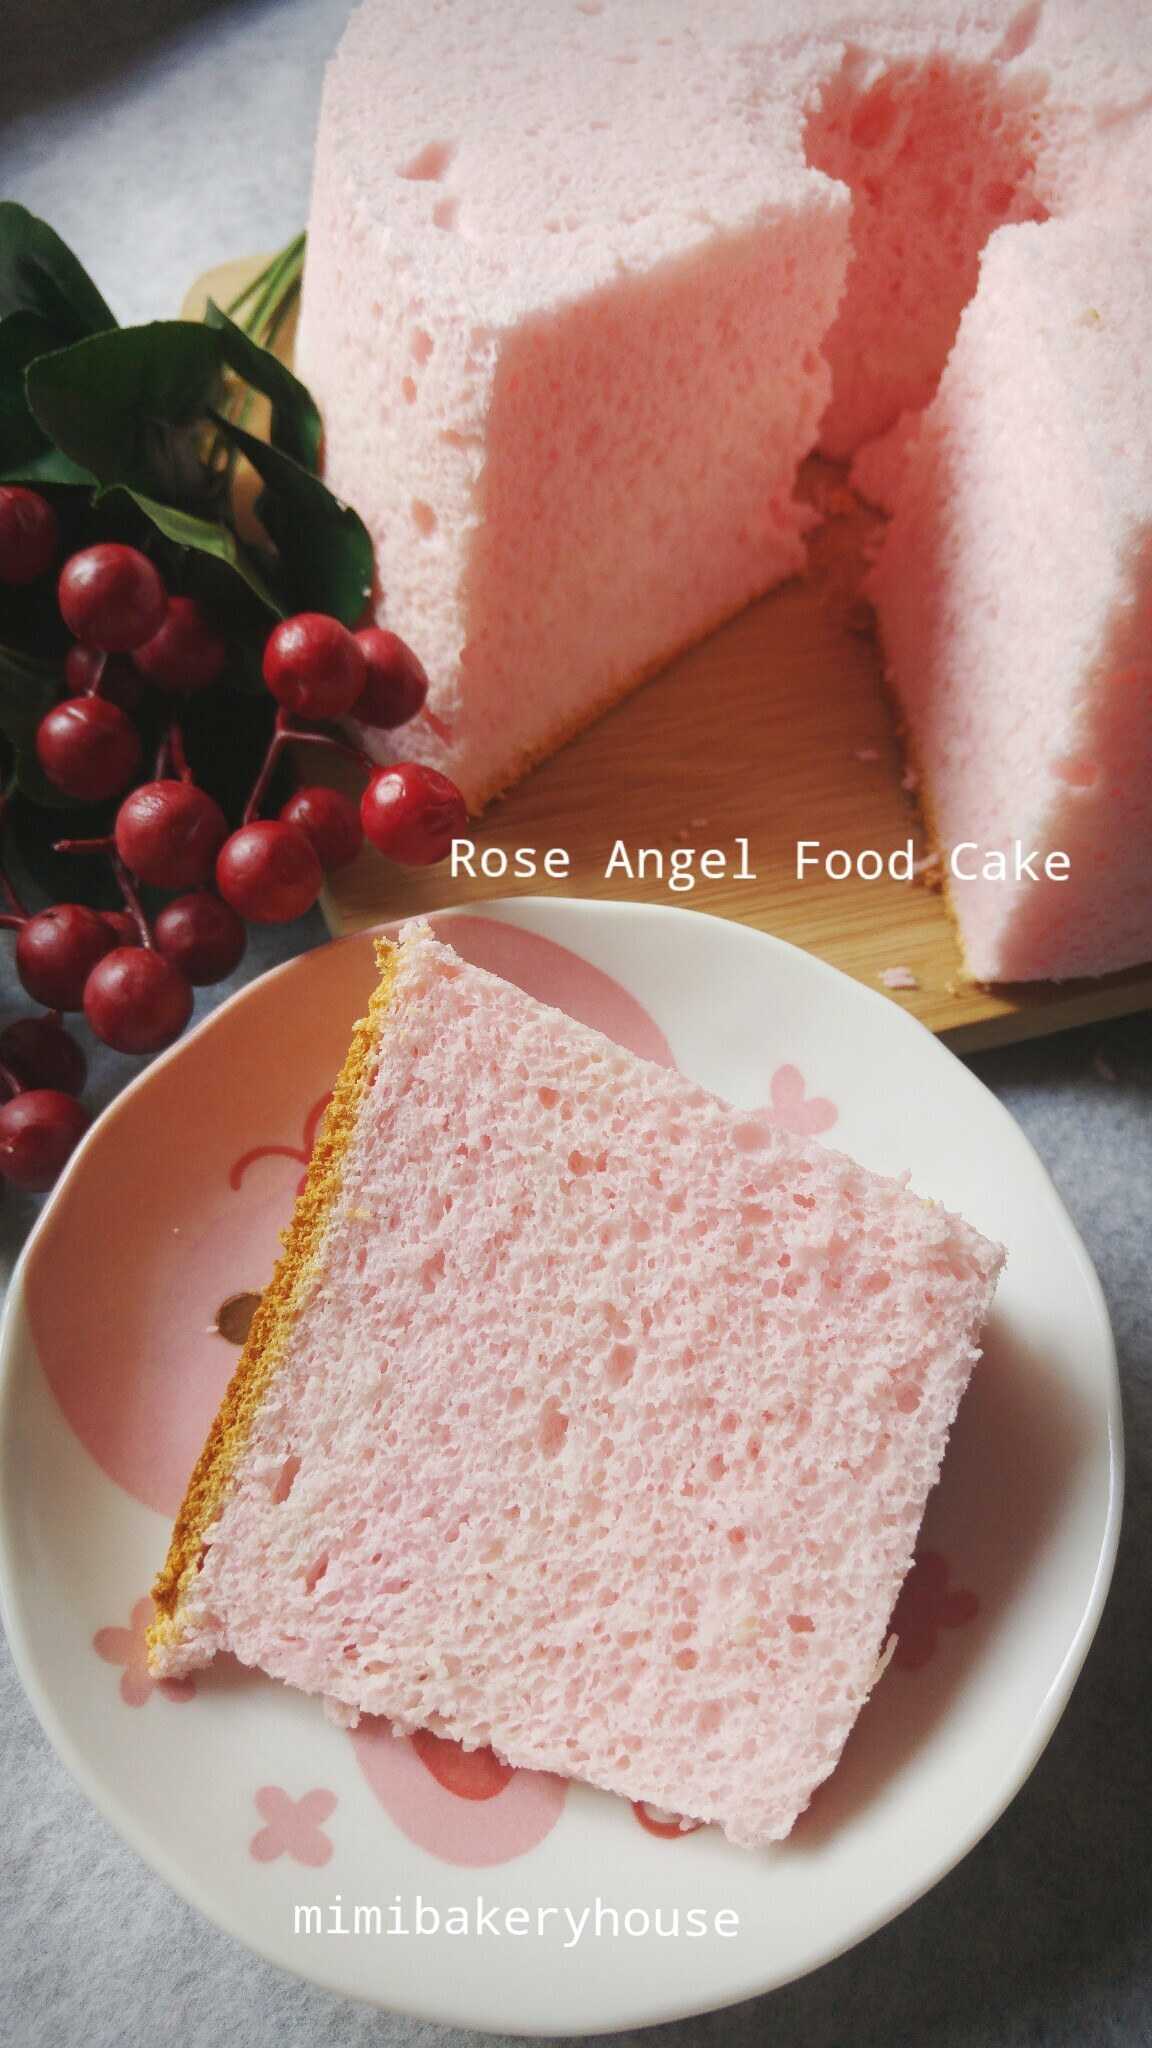 Rose Angel Food Cake [07 Mar 2016]